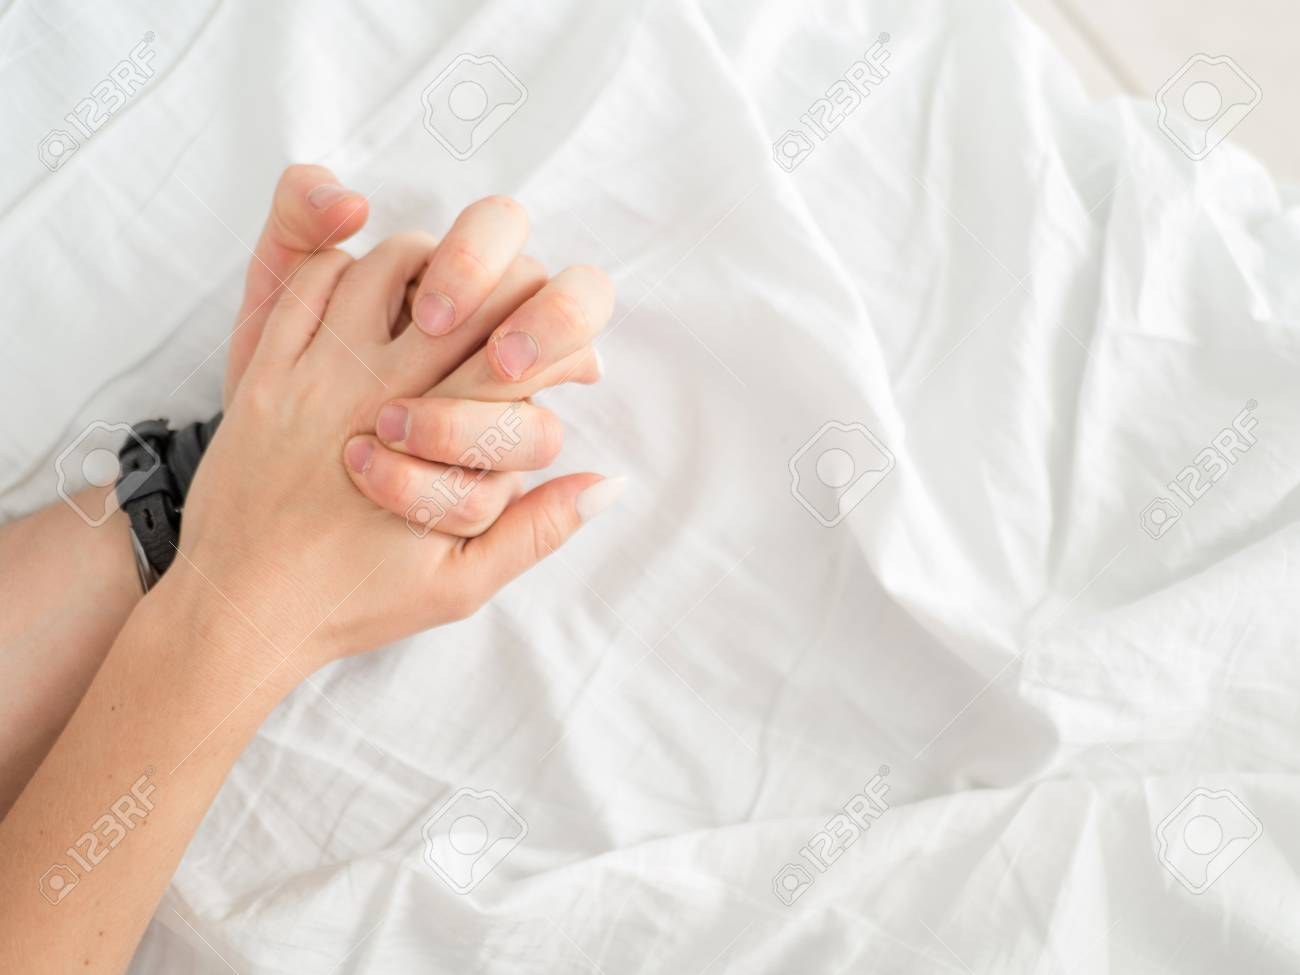 holding hands during sex